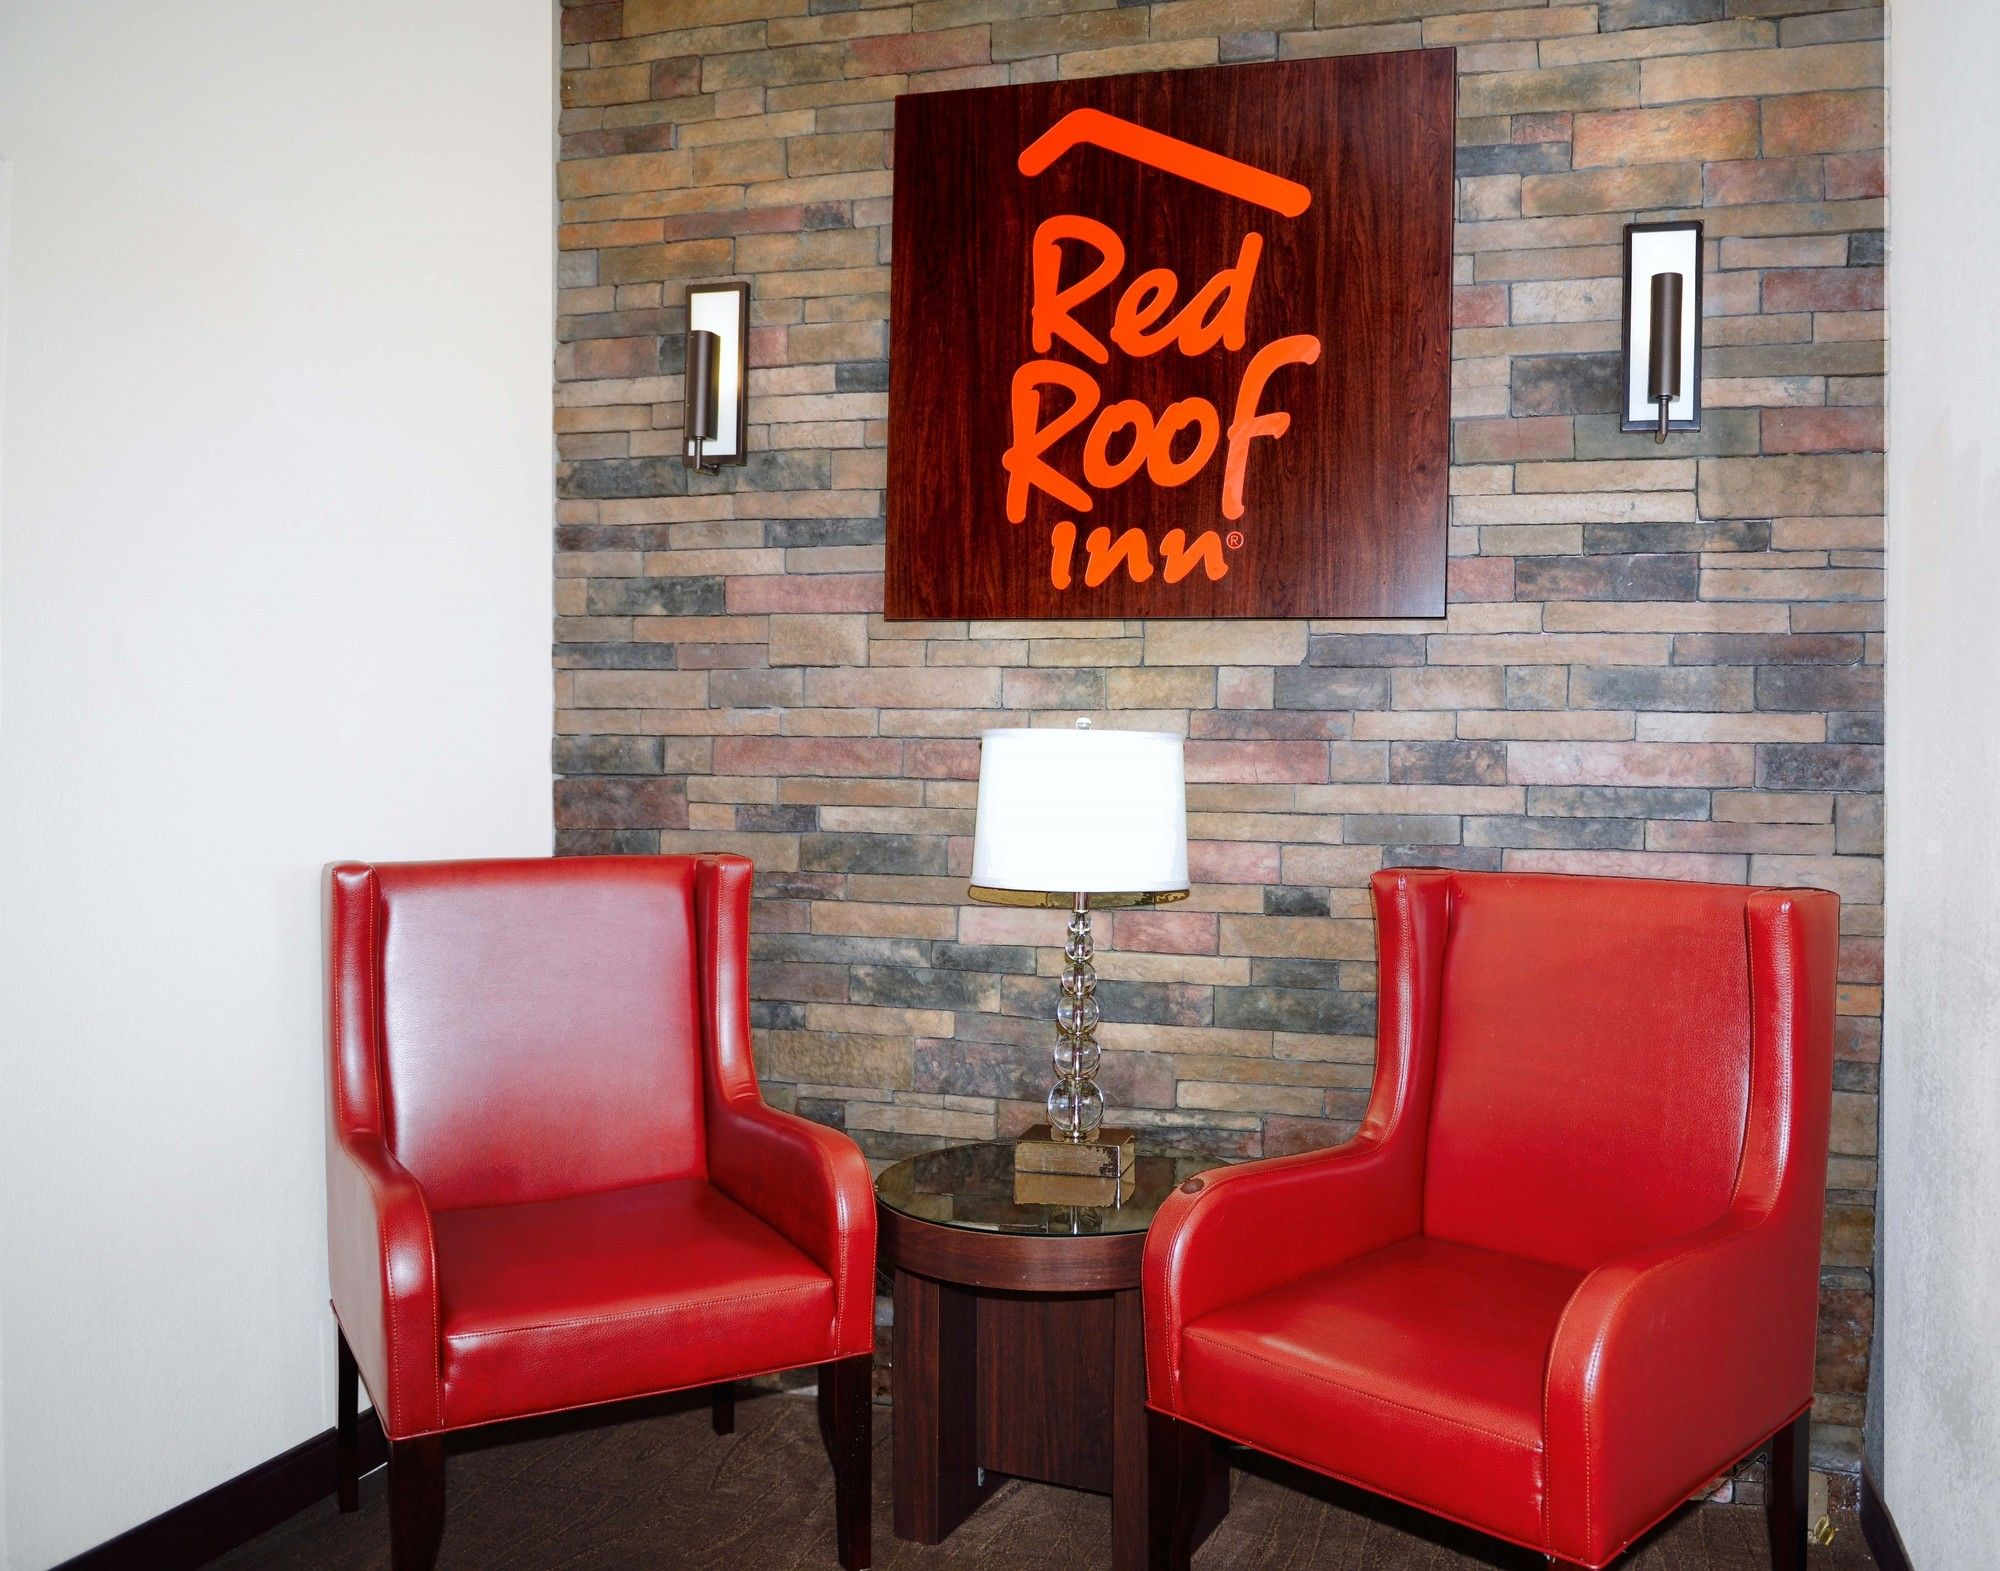 Red Roof Inn in Suwanee, GA